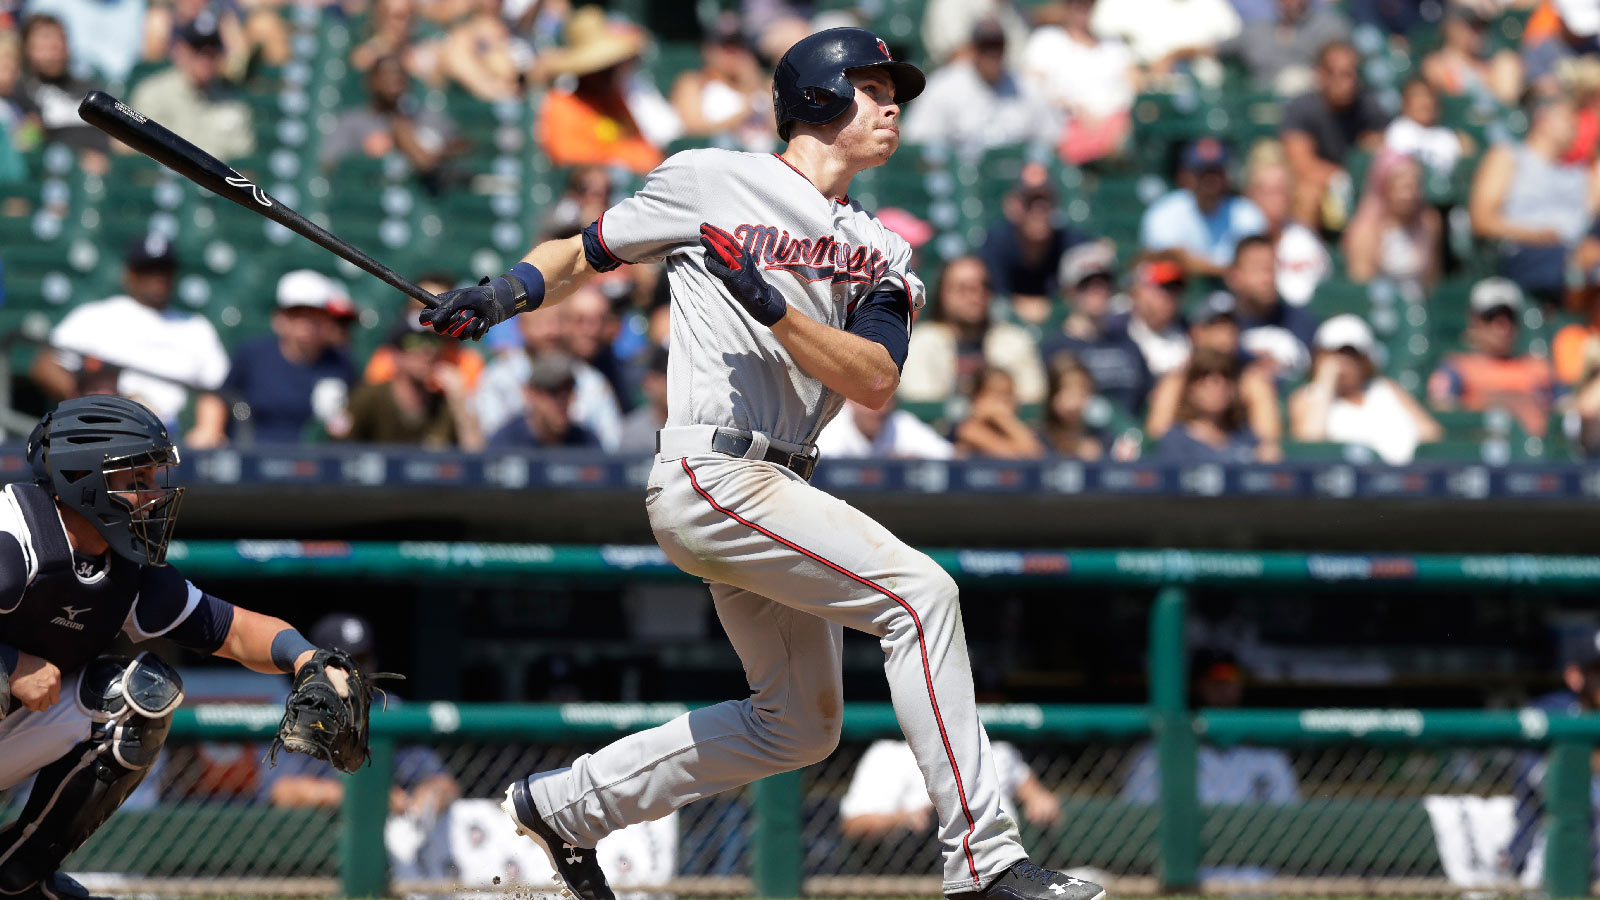 Kepler hits go-ahead homer in 9th as Twins win 4-1